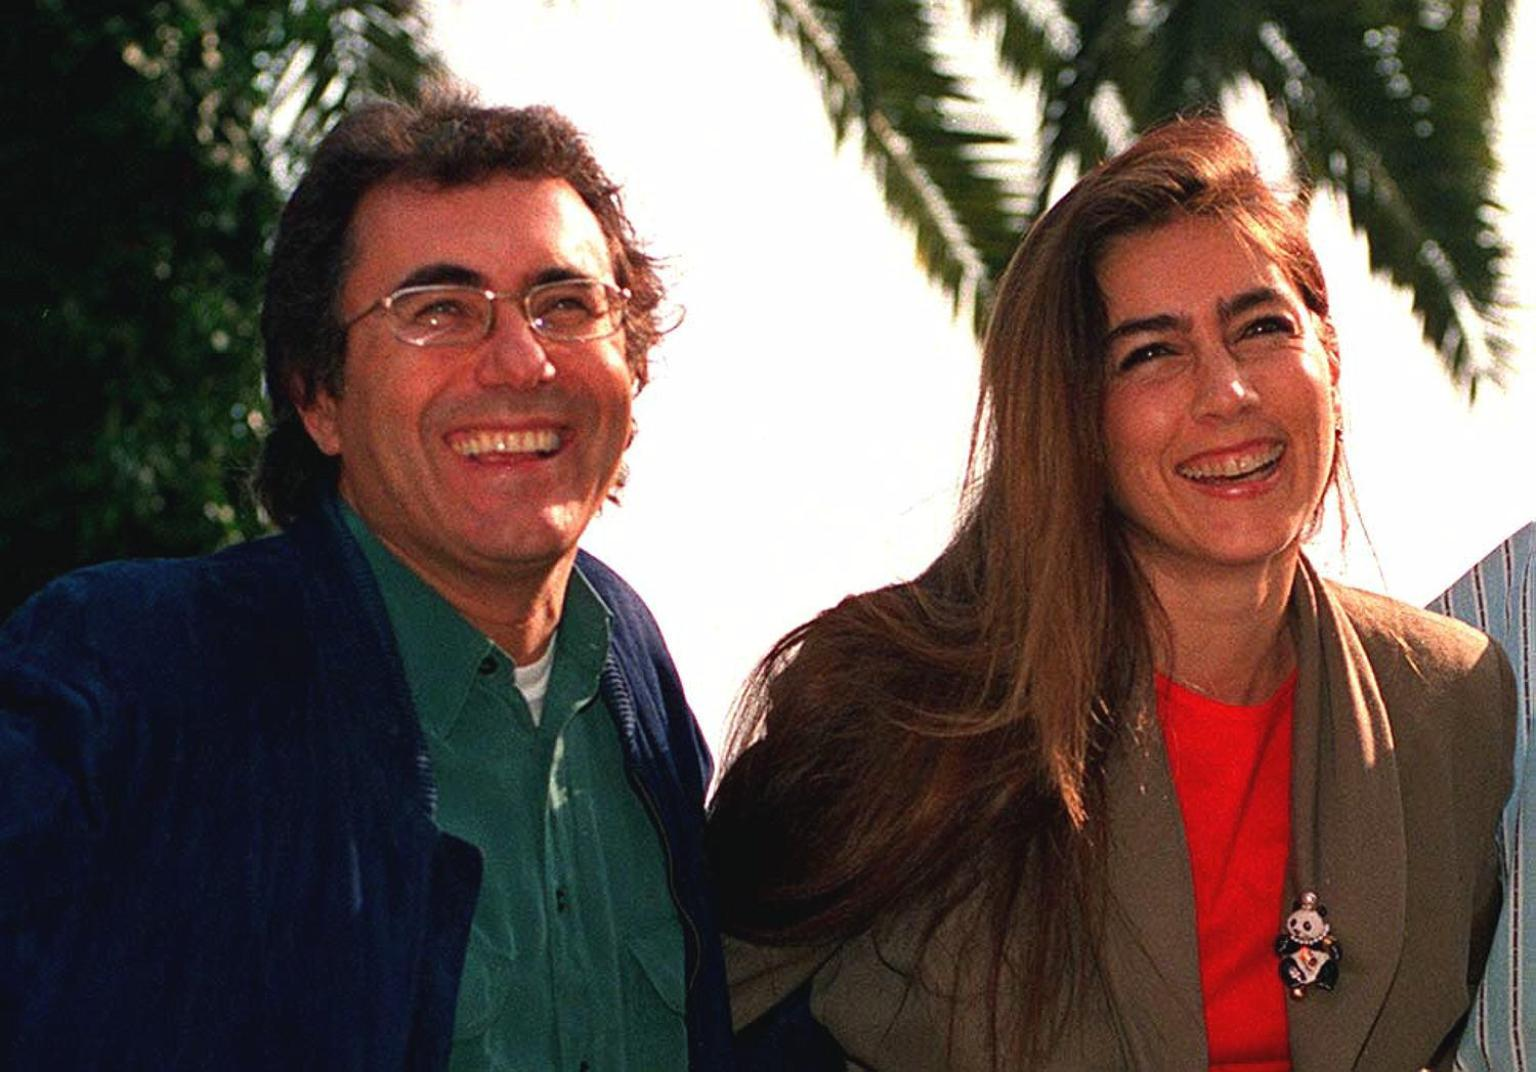 A Little History and The Most Beautiful Songs of the Famous Artists Al Bano and Romina Power